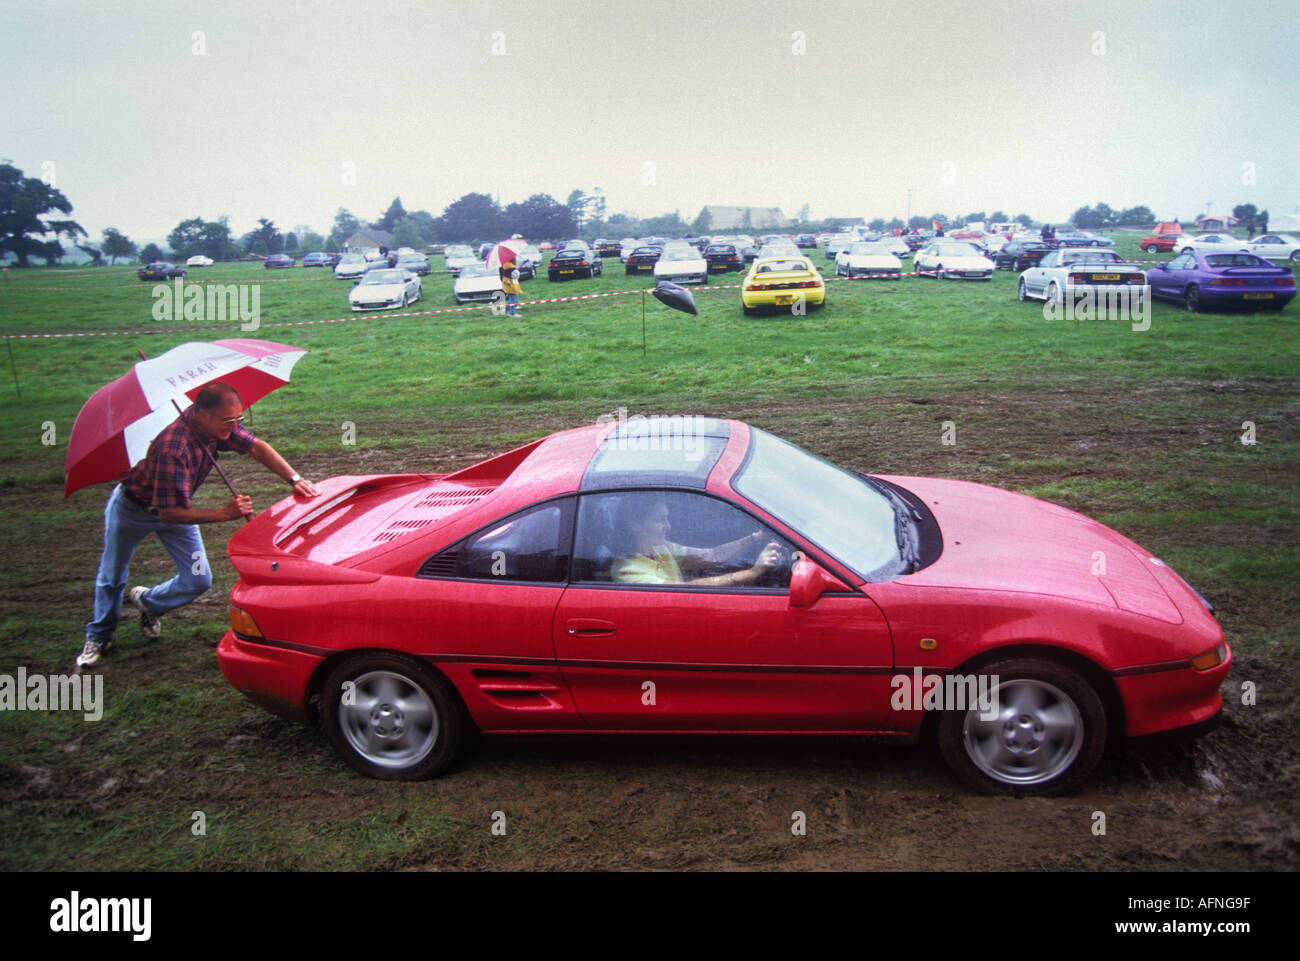 A Sports Car Stuck In The Mud At A Toyota Mr2 Gala In Tetbury Stock